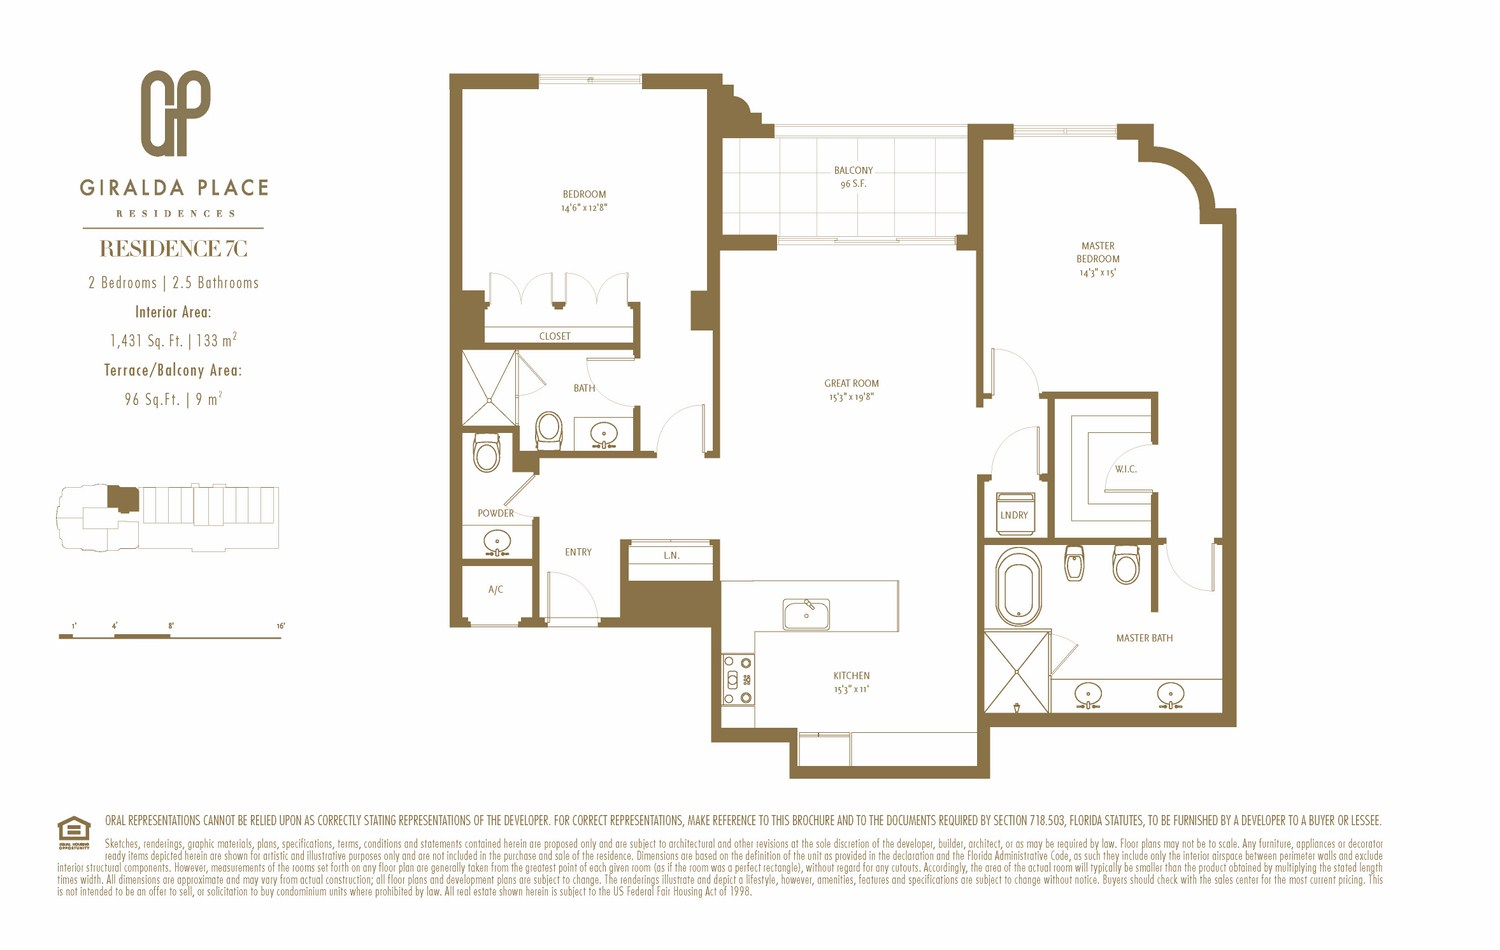 Giralda Place - Floorplan 3